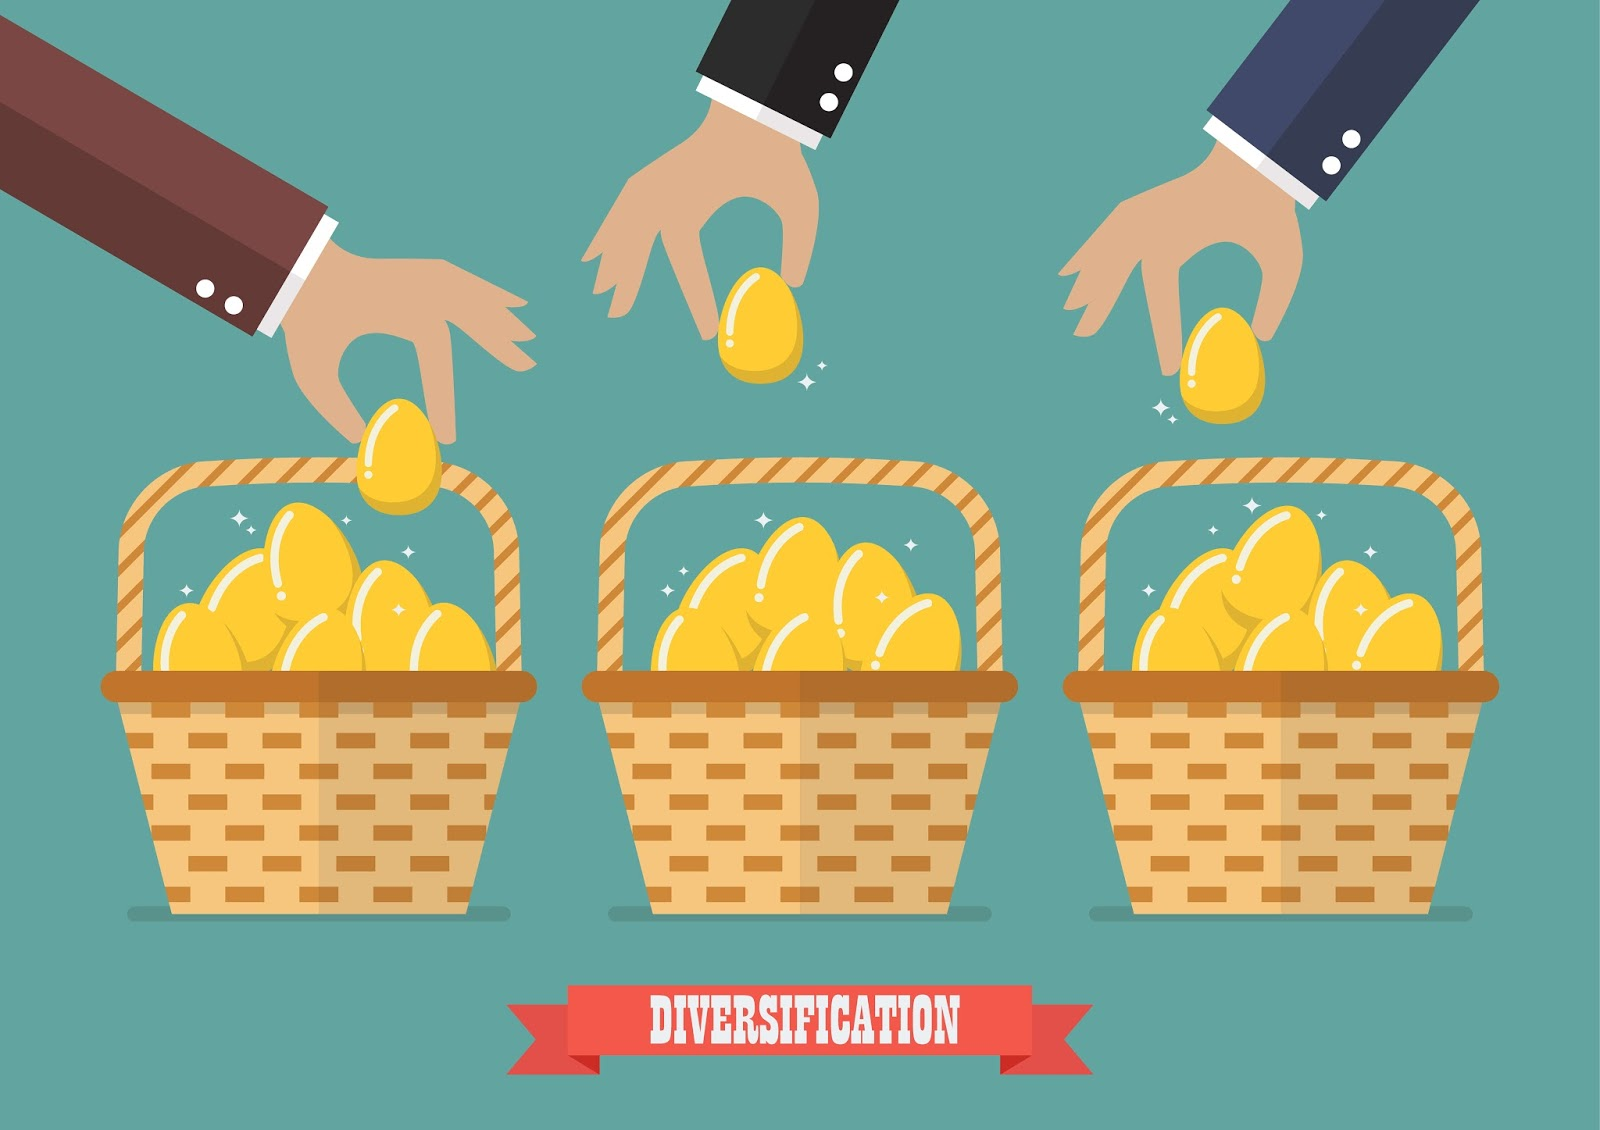 Diversification concept investors placing assets in different baskets